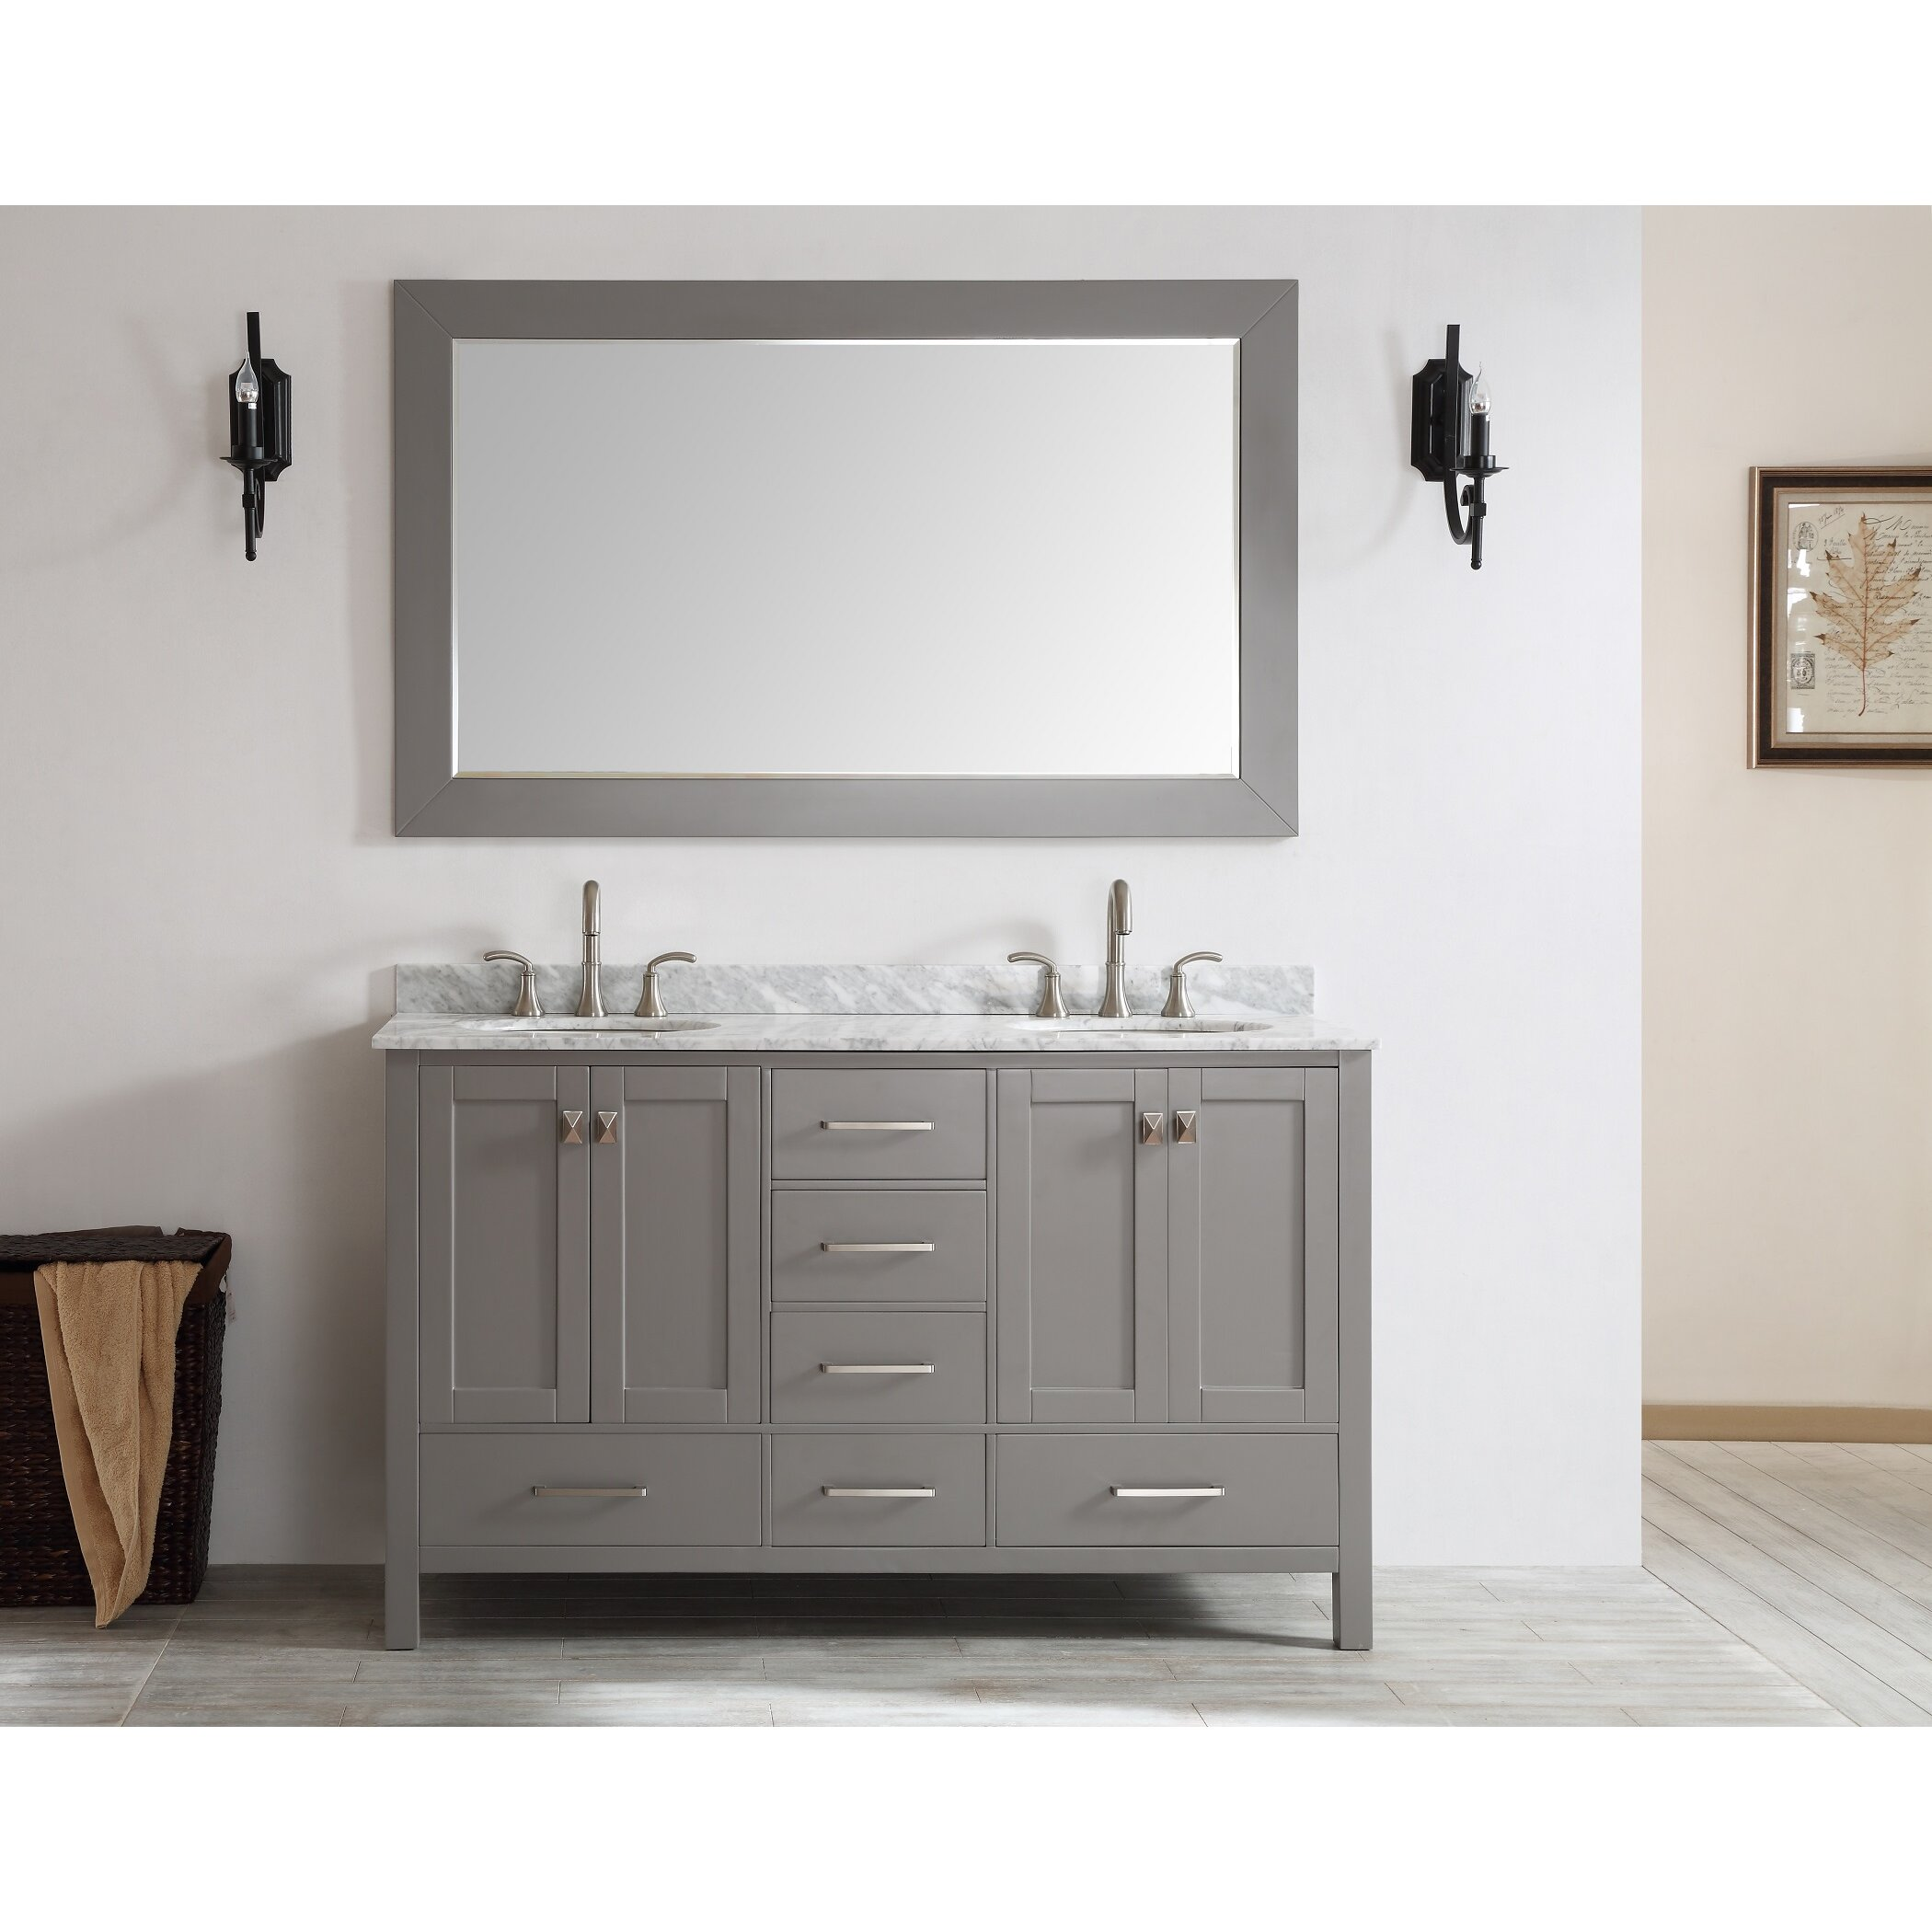 double countertop bathroom sinks with quot wayfair gallery square carrera aberdeen transitional white gray images eviva newcastle and vanity grey